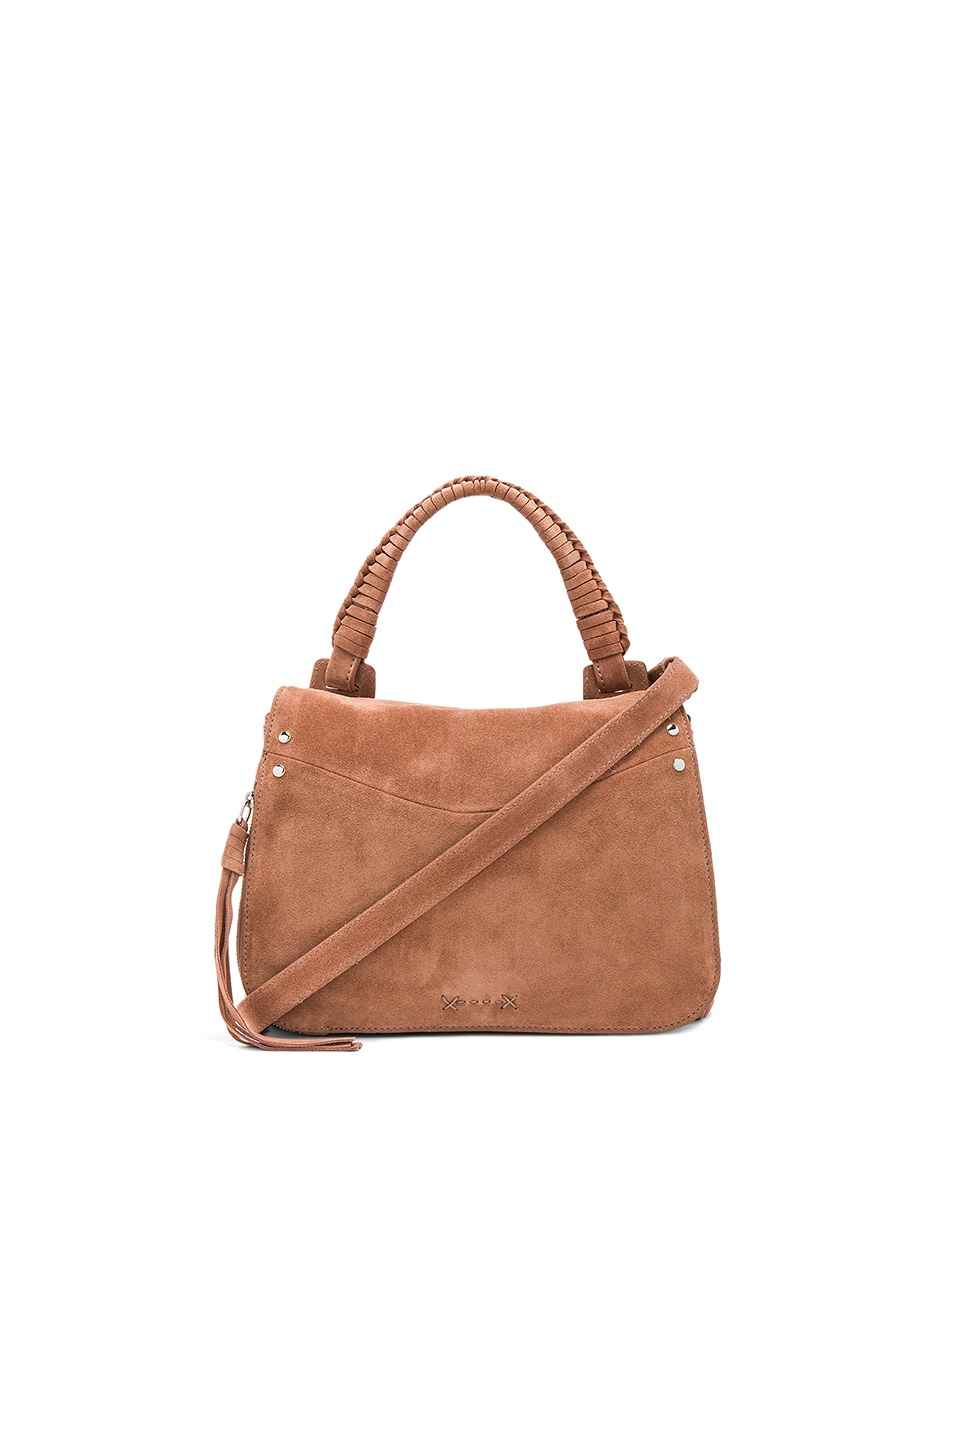 Elizabeth and James Trapeze Small Crossbody in Twig